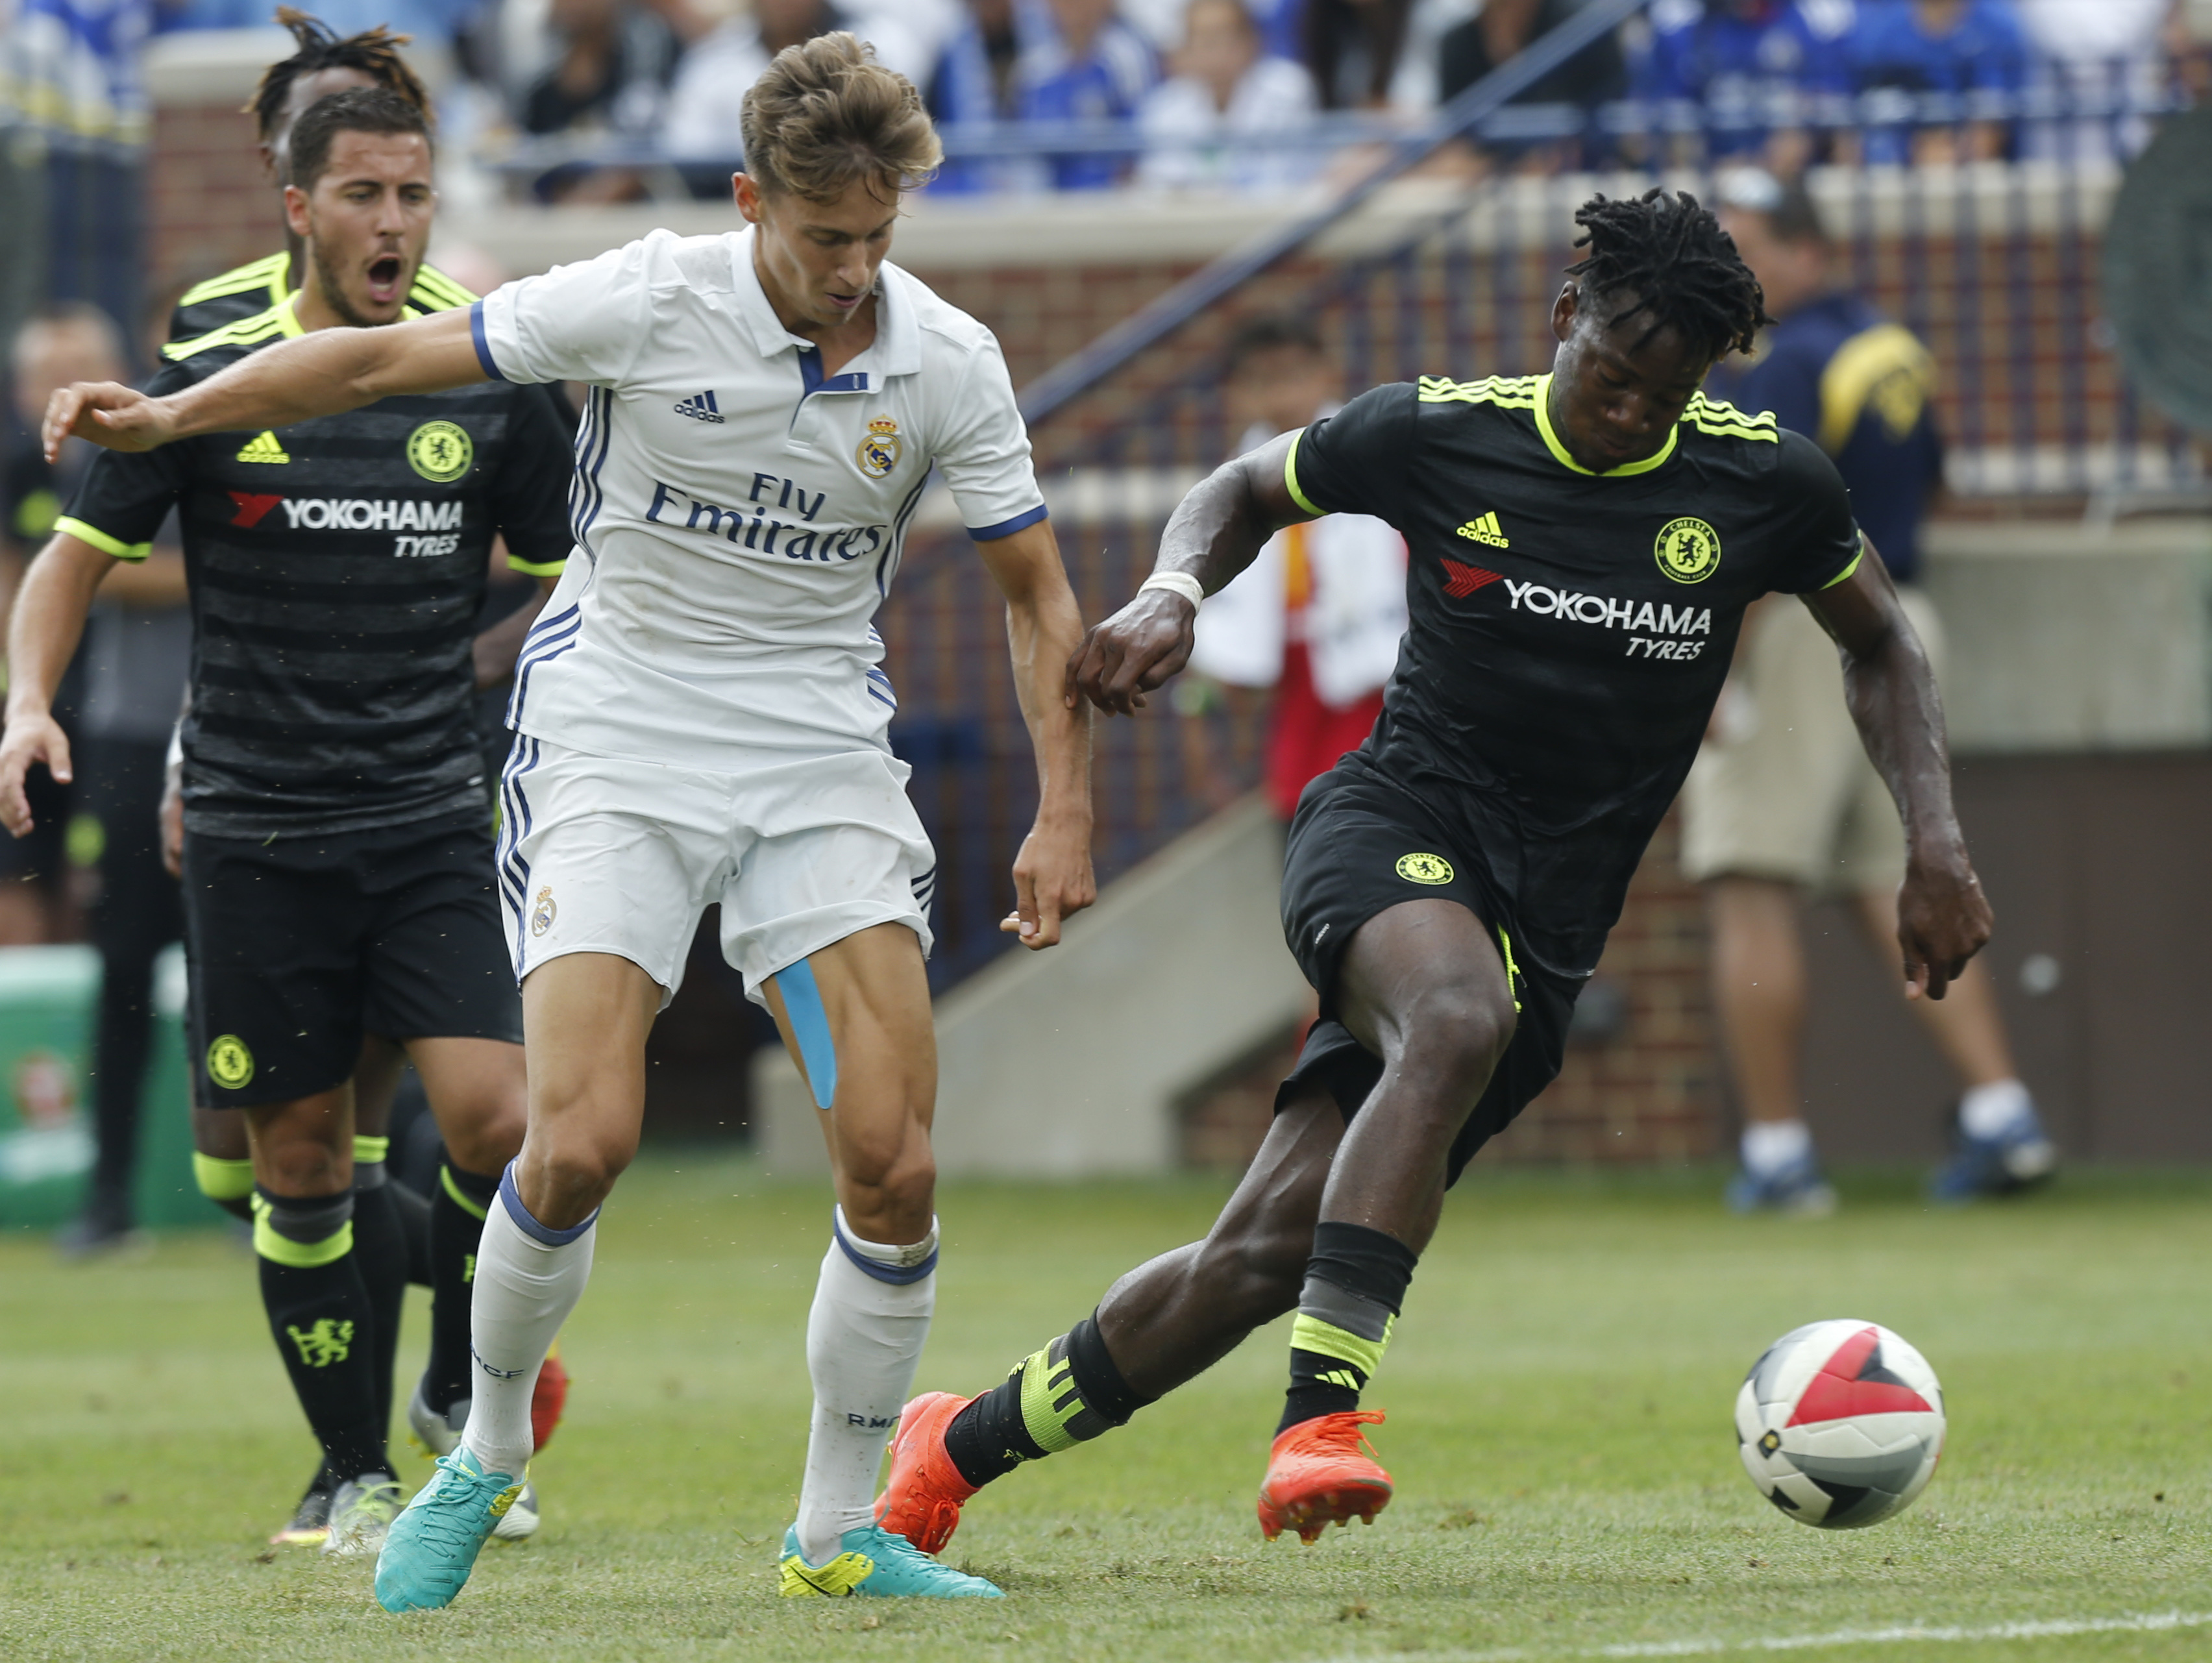 Chelsea forward Michy Batshuayi (R) and Real Real Madrid midfielder Marcos Llorente (L) chase a loose ball during an International Champions Cup soccer match in Ann Arbor, Michigan on July 30, 2016. / AFP / Jay LaPrete (Photo credit should read JAY LAPRETE/AFP/Getty Images)